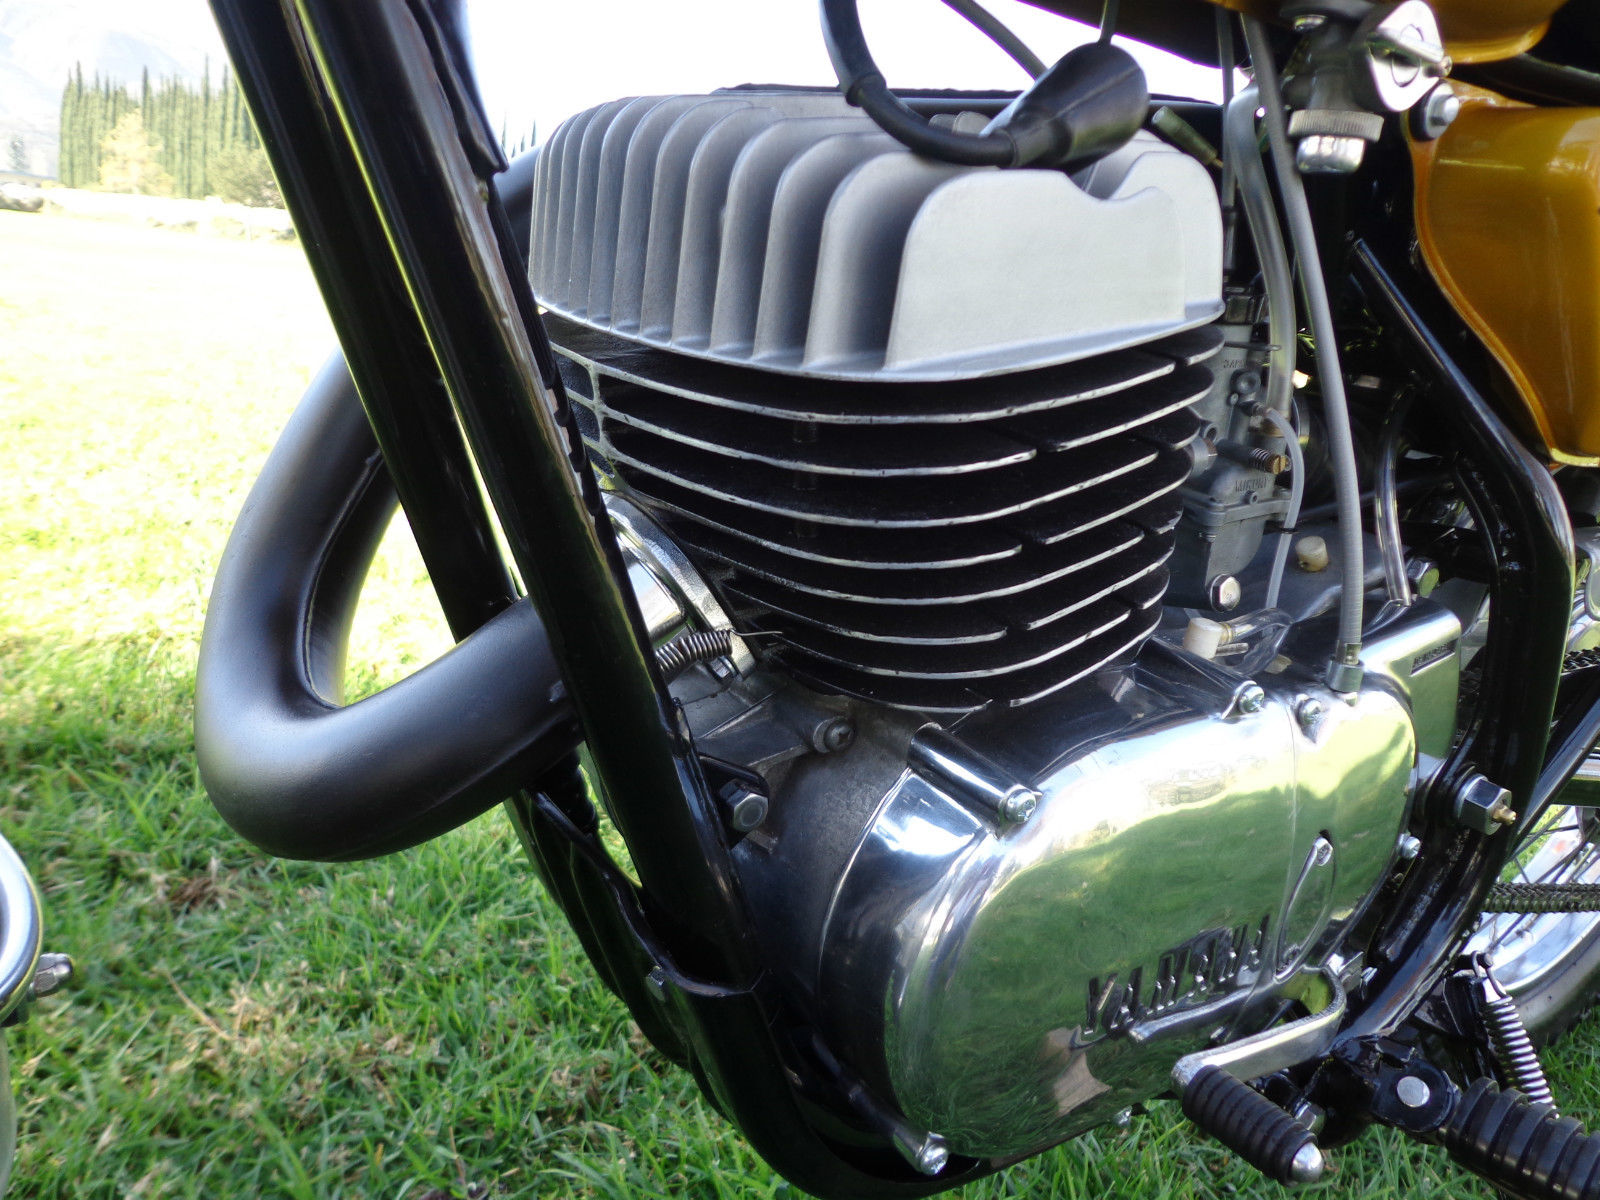 Yamaha DT250 - 1972 - Frame, Engine, Exhaust and Cylinder Head.